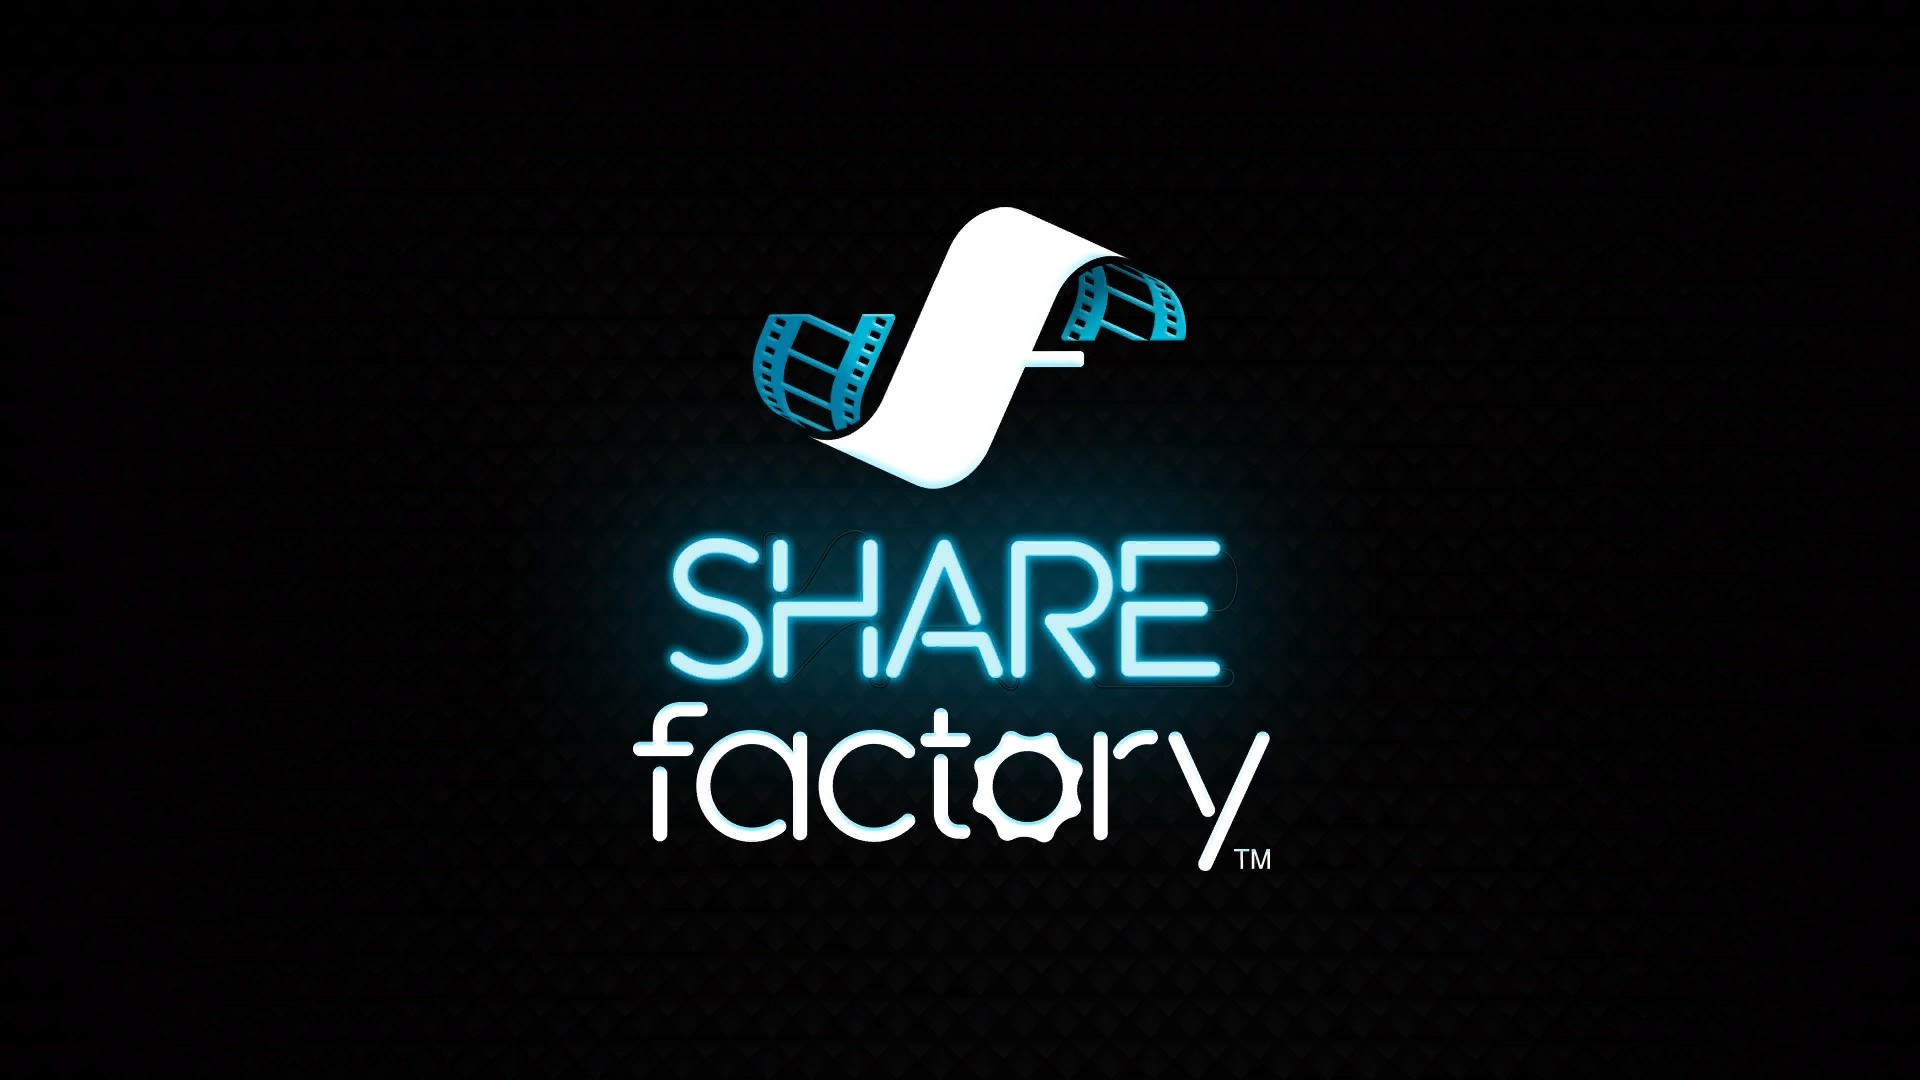 SHAREfactory™_20161118221355